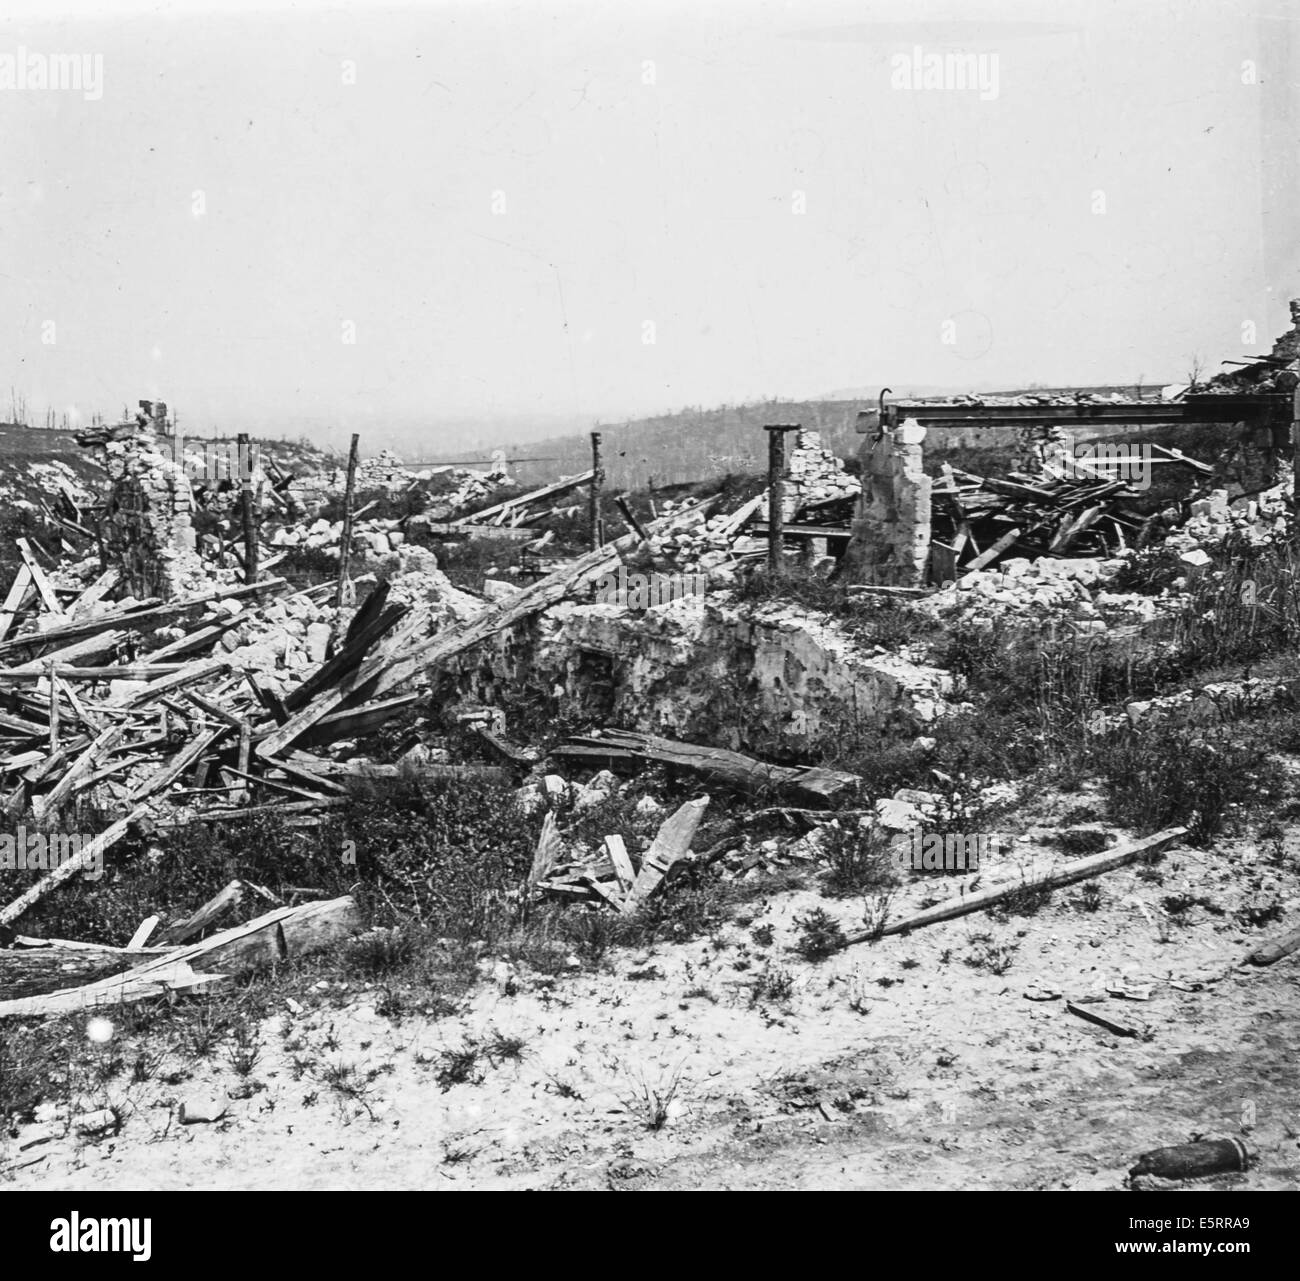 La Malmaison farm completely destroyed during the Battle of the Chemin des Dames in 1917, Aisne, France. - Stock Image